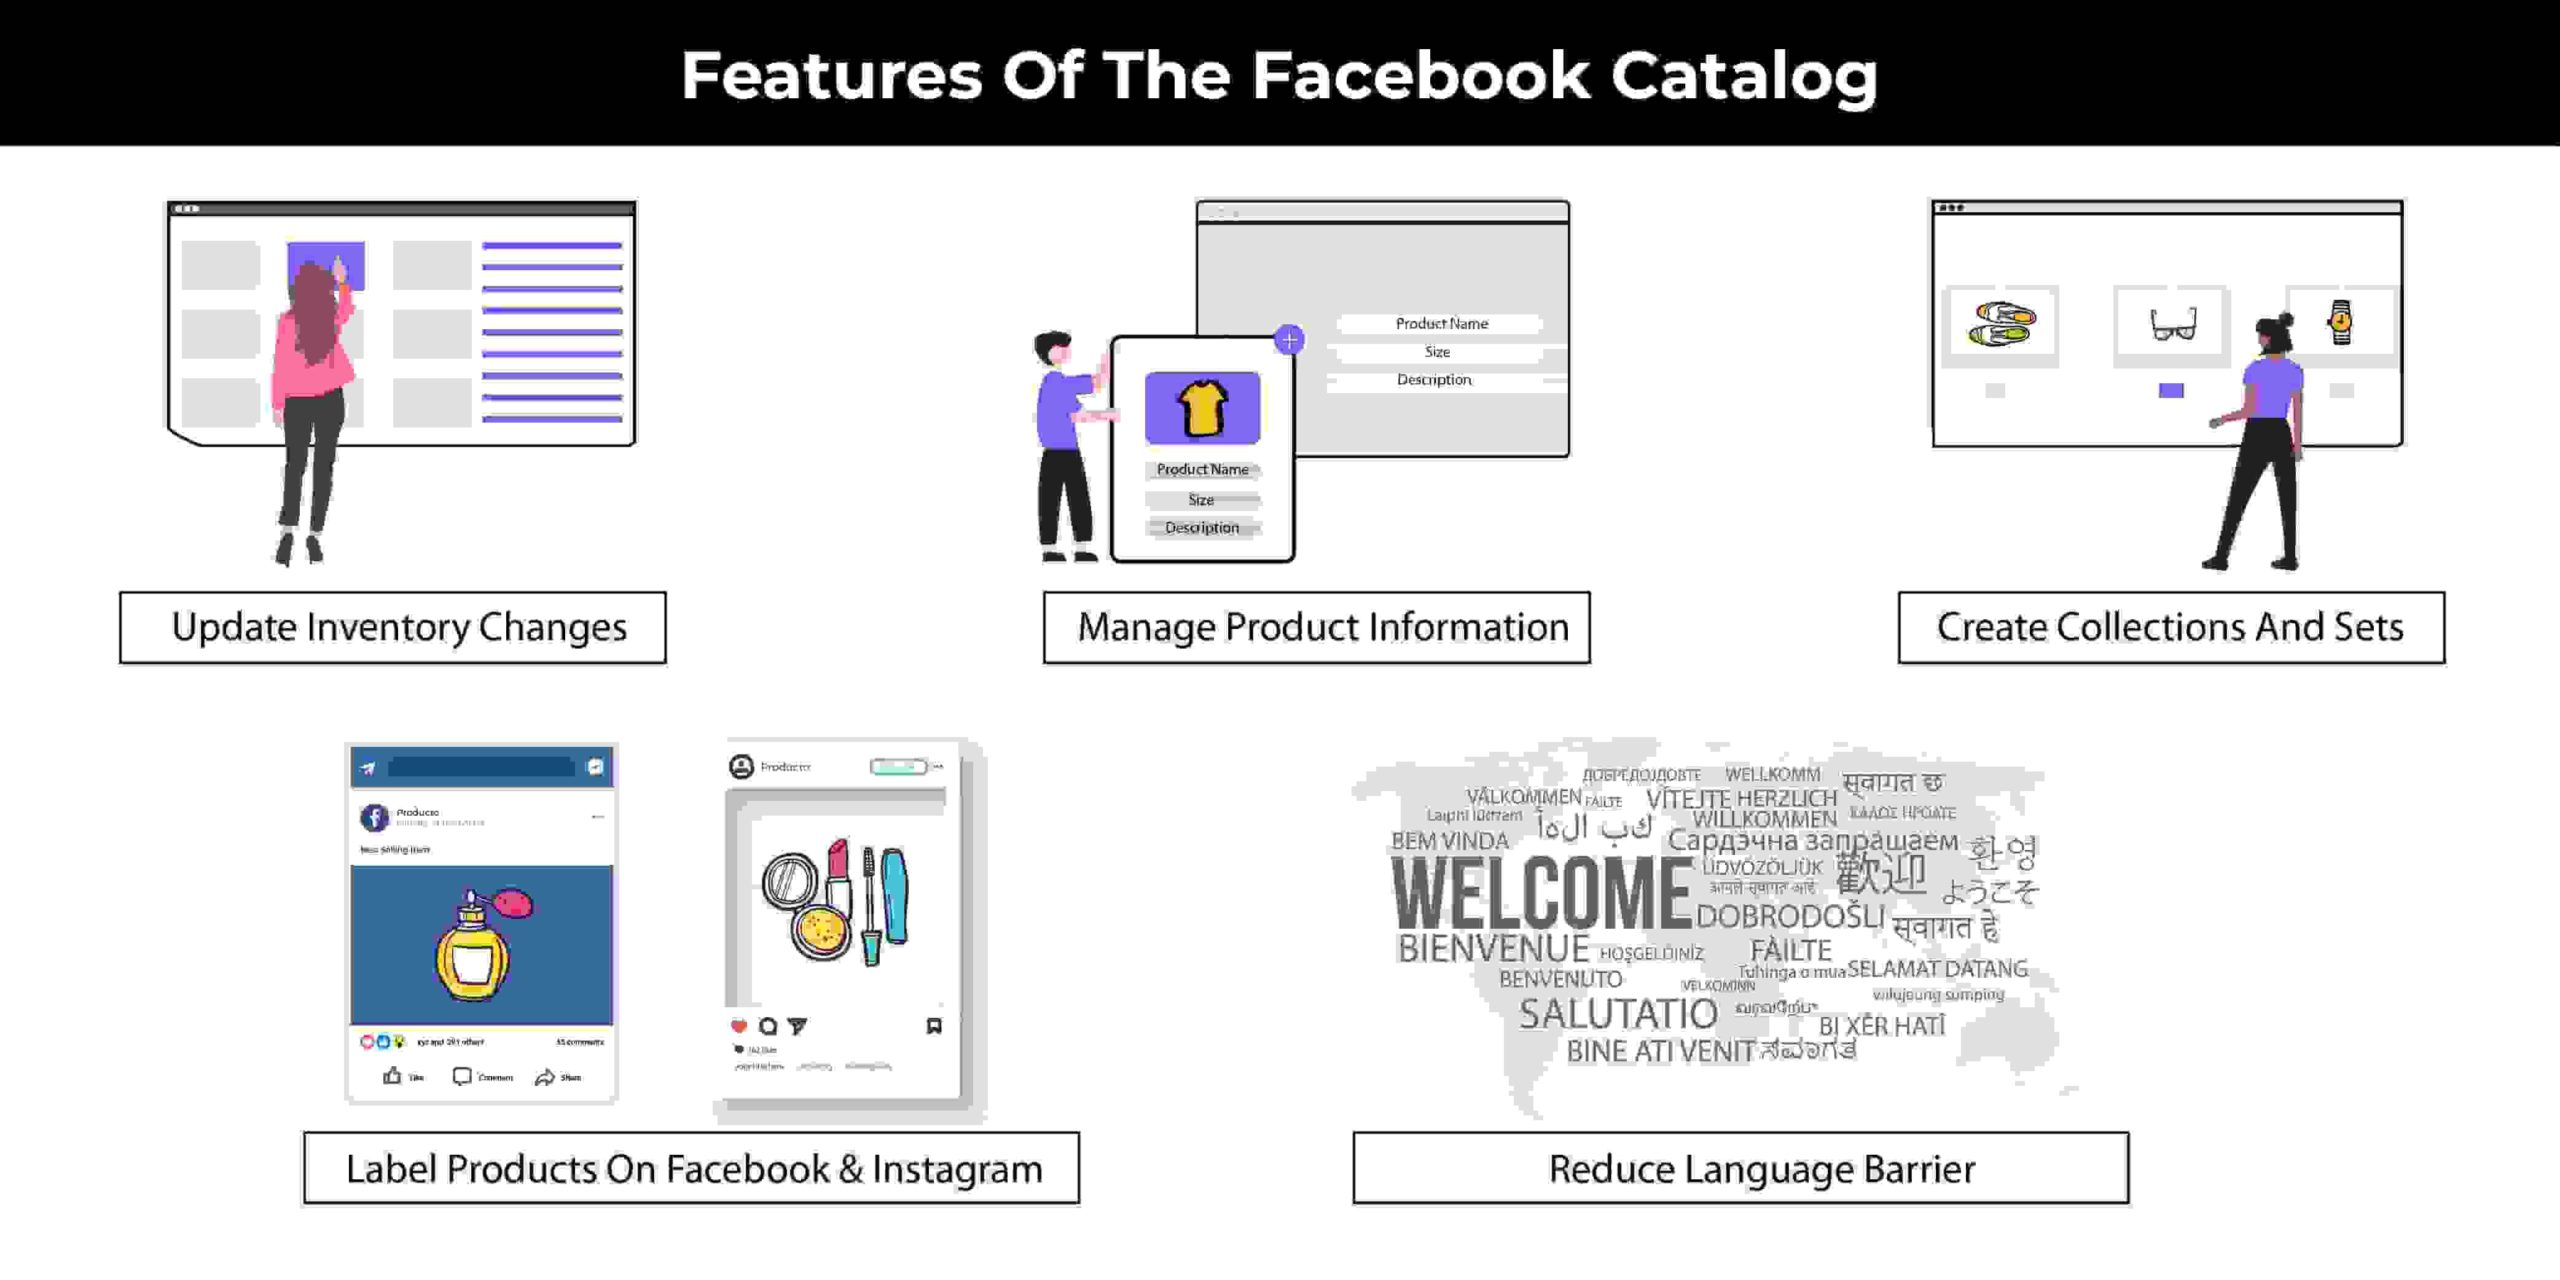 Facebook product catalog features